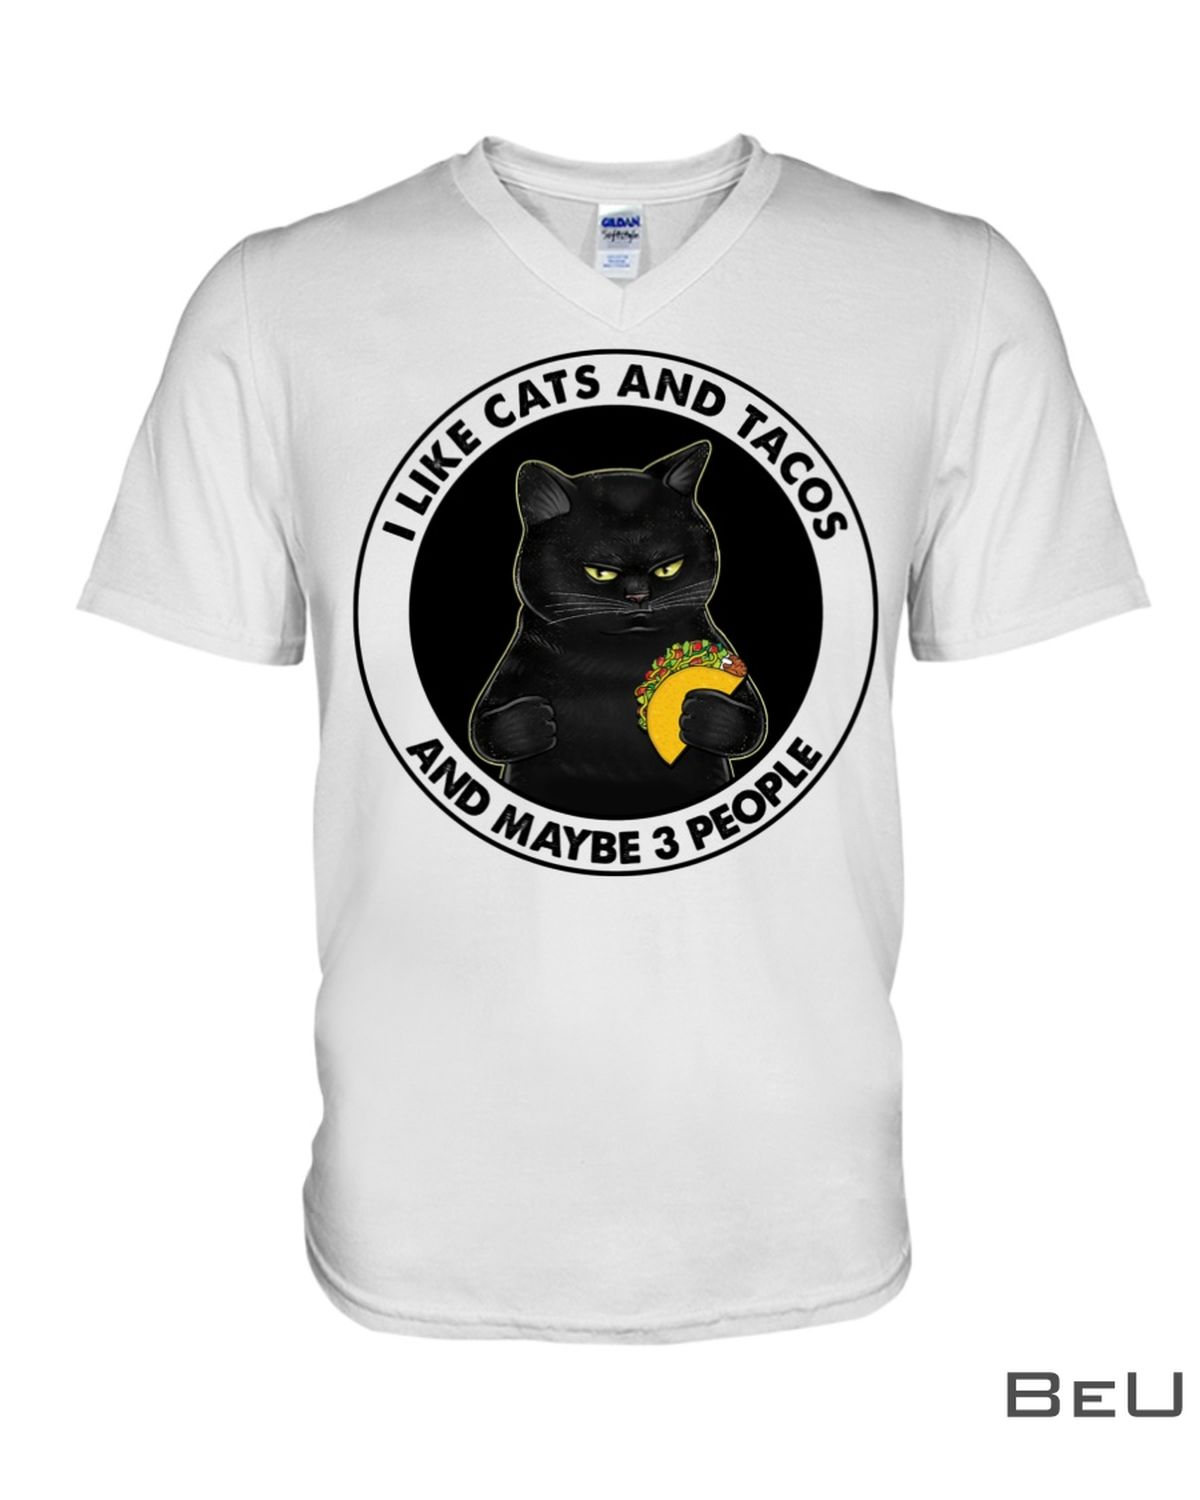 I Like Cats And Tacos And Maybe 3 People Shirt x